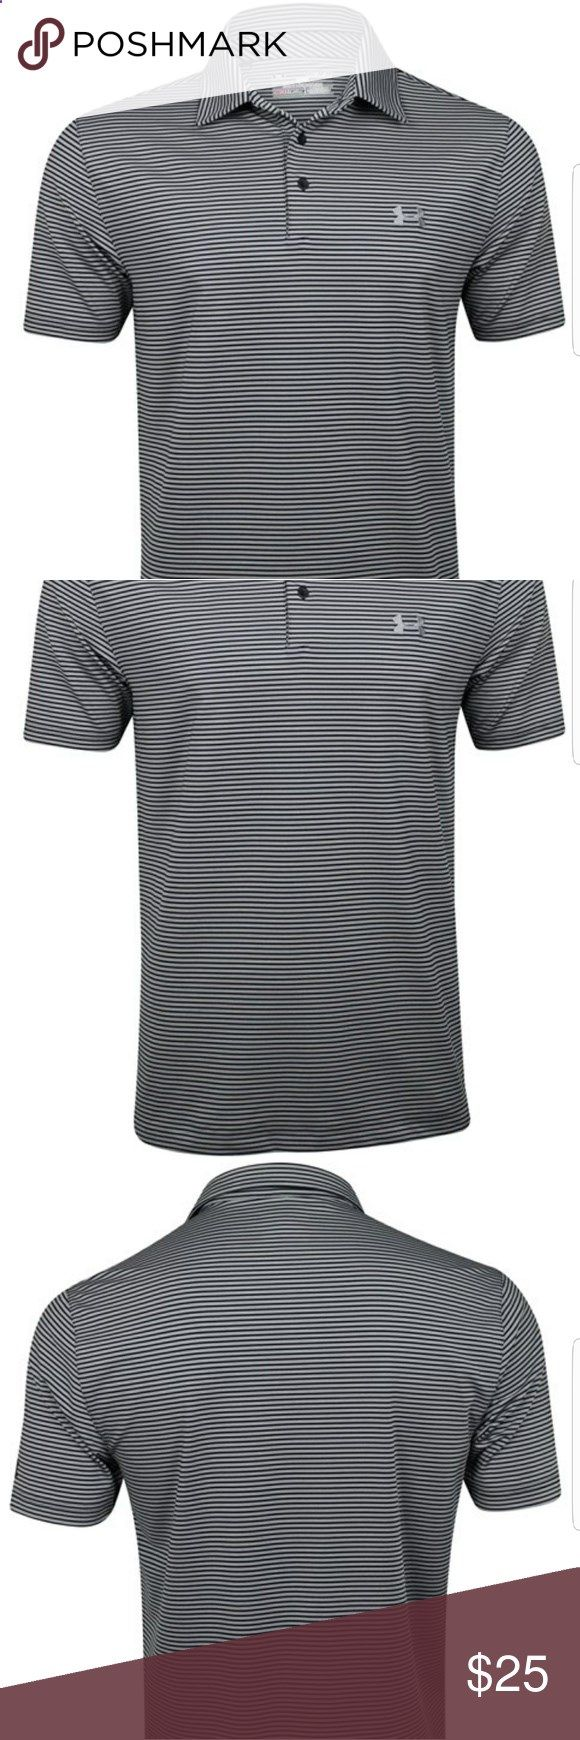 Golf Shirts - Under Armour Mens Golf Shirt Dry Wick Fabric Very lightweight and soft Under Armour Shirts